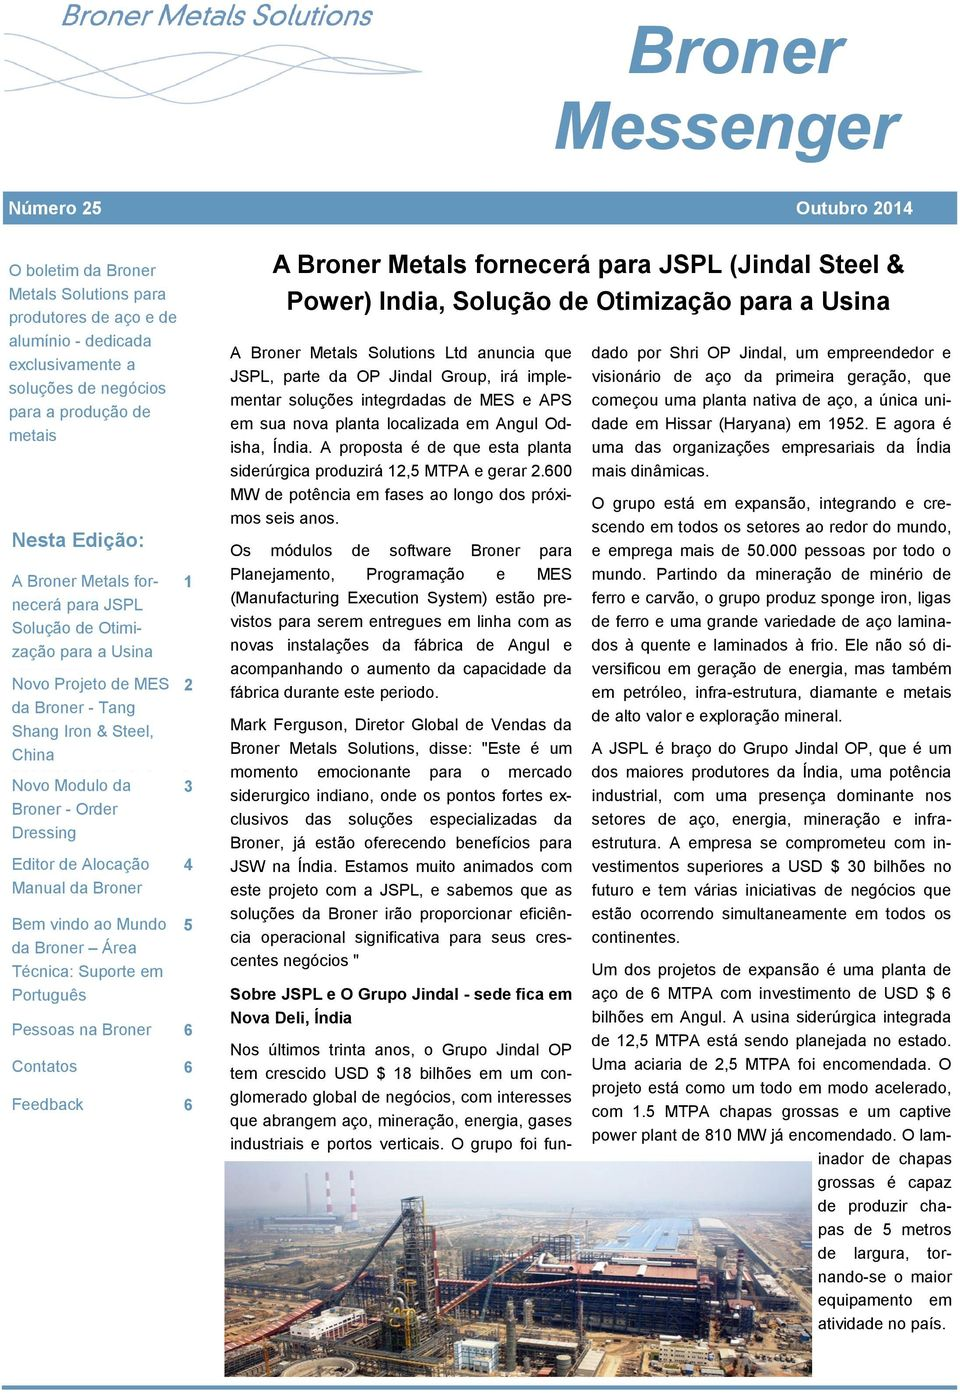 2 JSW da Broner goes live - Tang with 2 Broner Shang MES Iron & Steel, China Updates to Broner s 3 MES Novo Modulo da 3 Broner - Order Broner Solution Success at AMG 4 Dressing Editor de Alocação